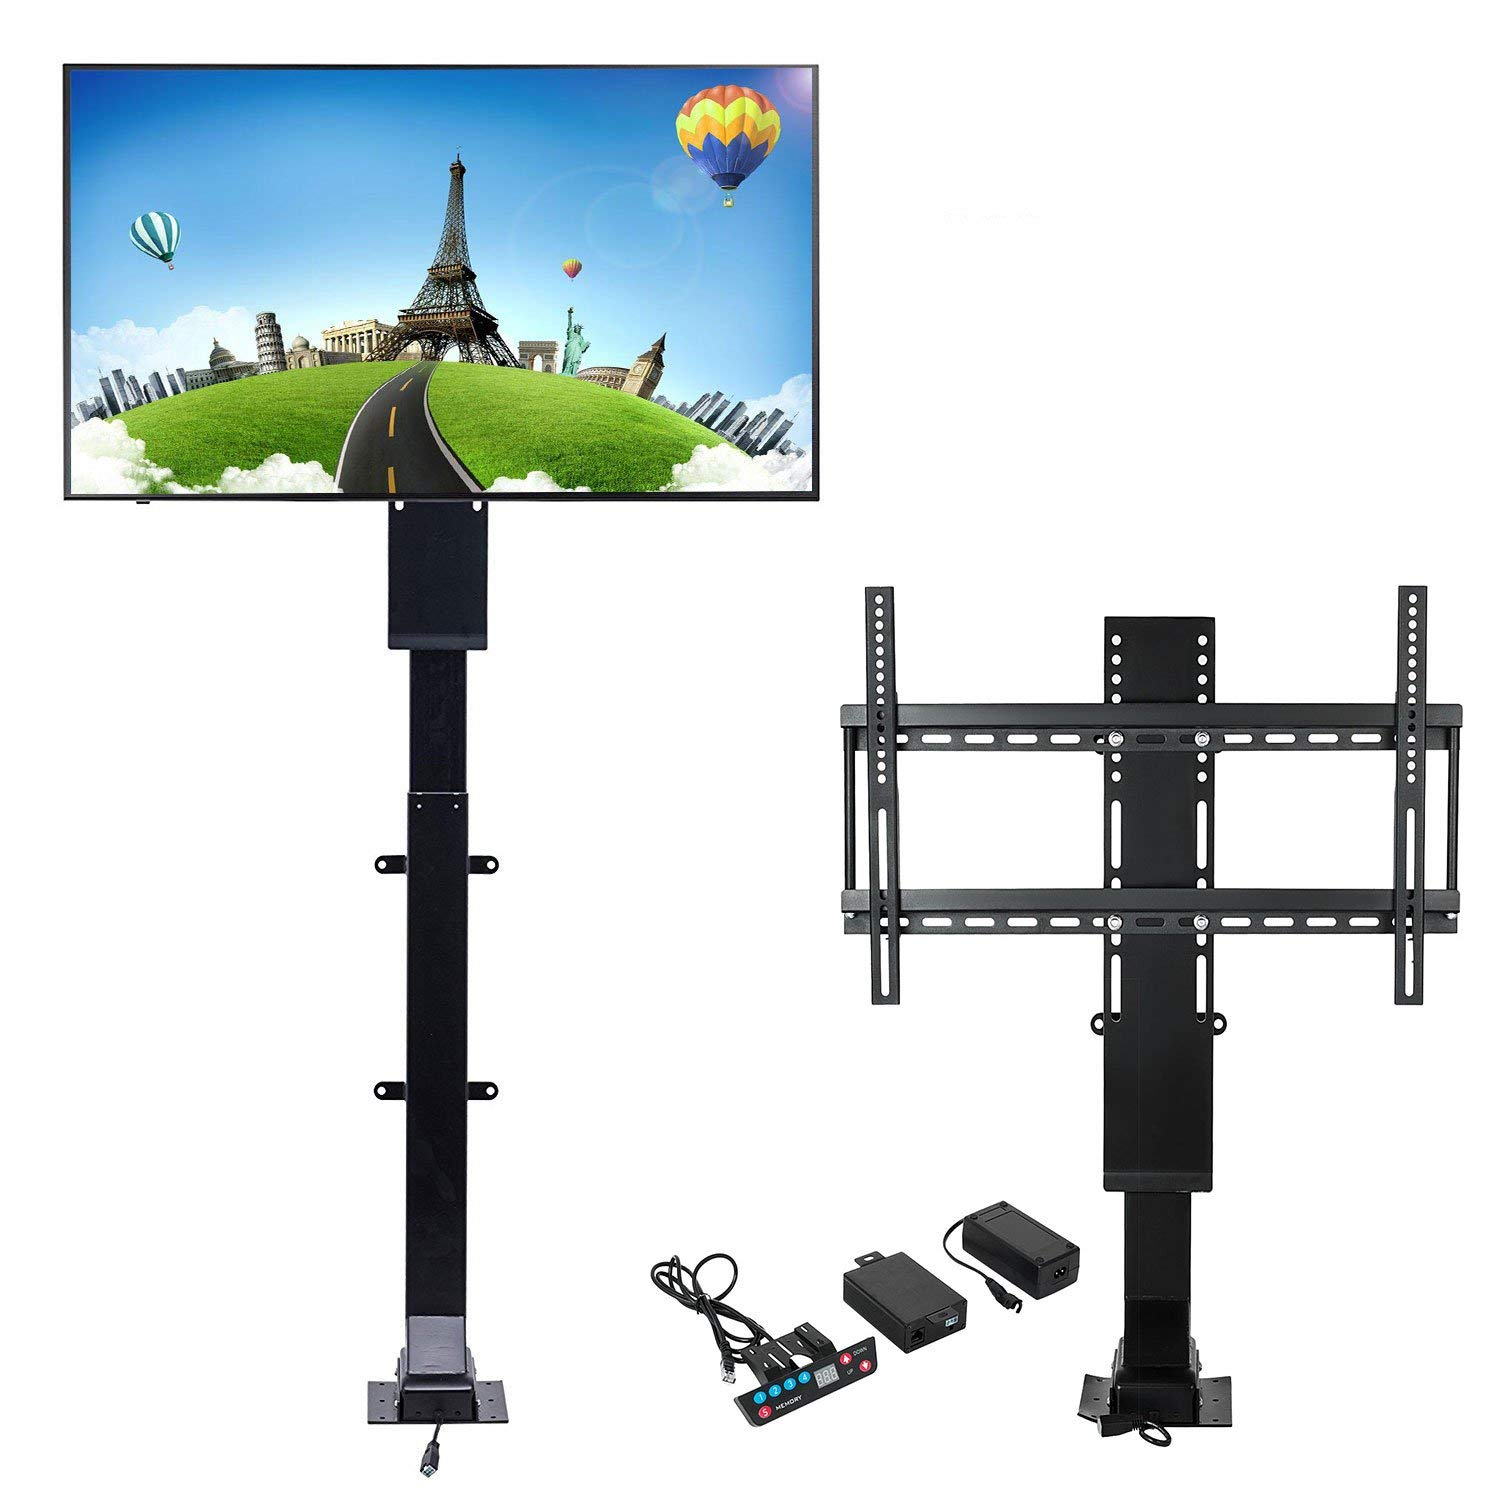 Happybuy Motorized TV Lift Flat TV 1000mm TV Lift Mechanism Auto Lifting Adjustable Height with Wireless RF Remote Controller for Plasma LCD LED TV and Monitors (B) by Happybuy